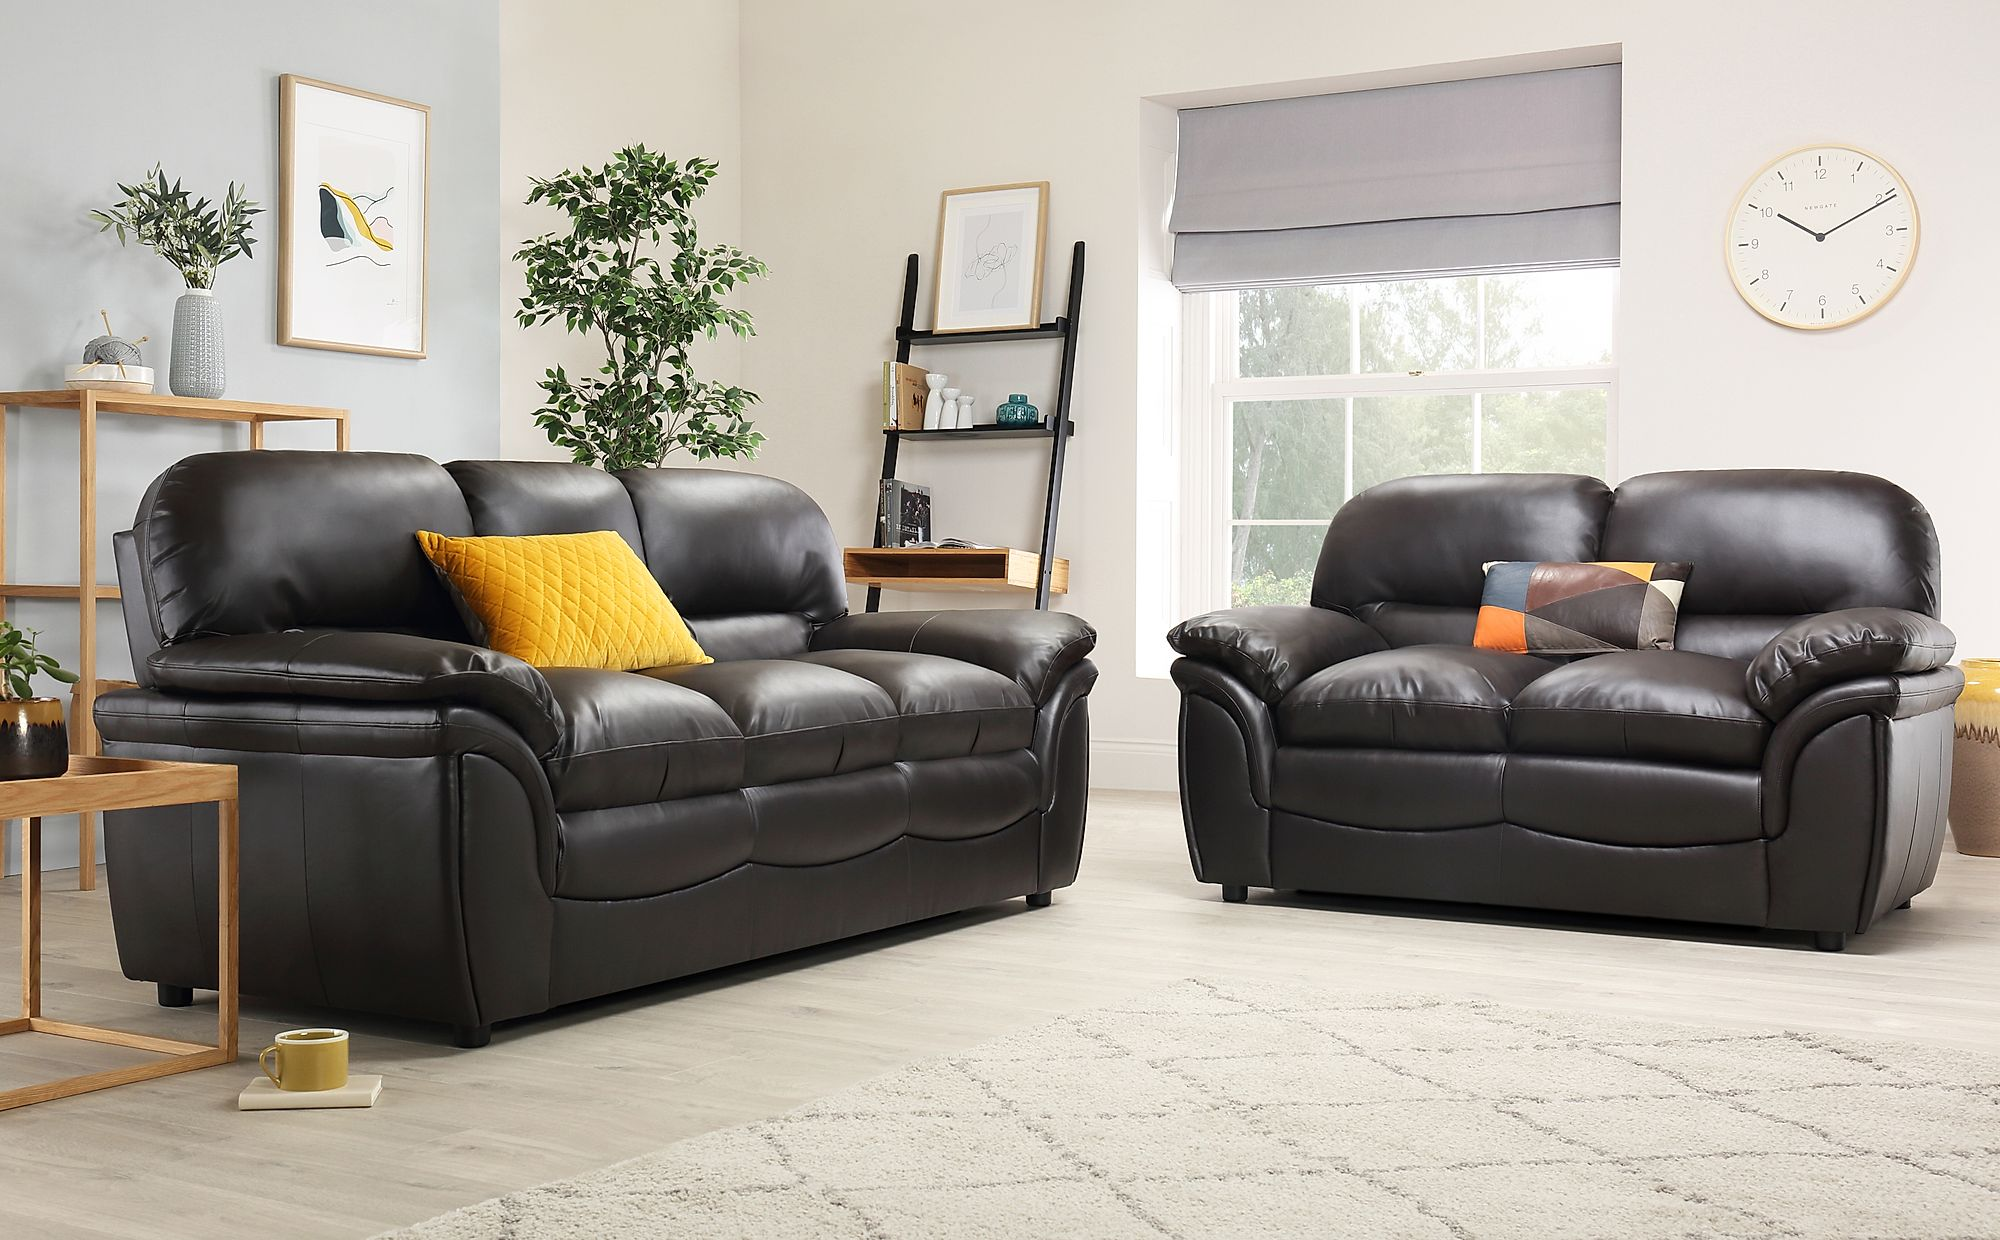 Amazing Rochester Brown Leather 3 2 Seater Sofa Set Squirreltailoven Fun Painted Chair Ideas Images Squirreltailovenorg